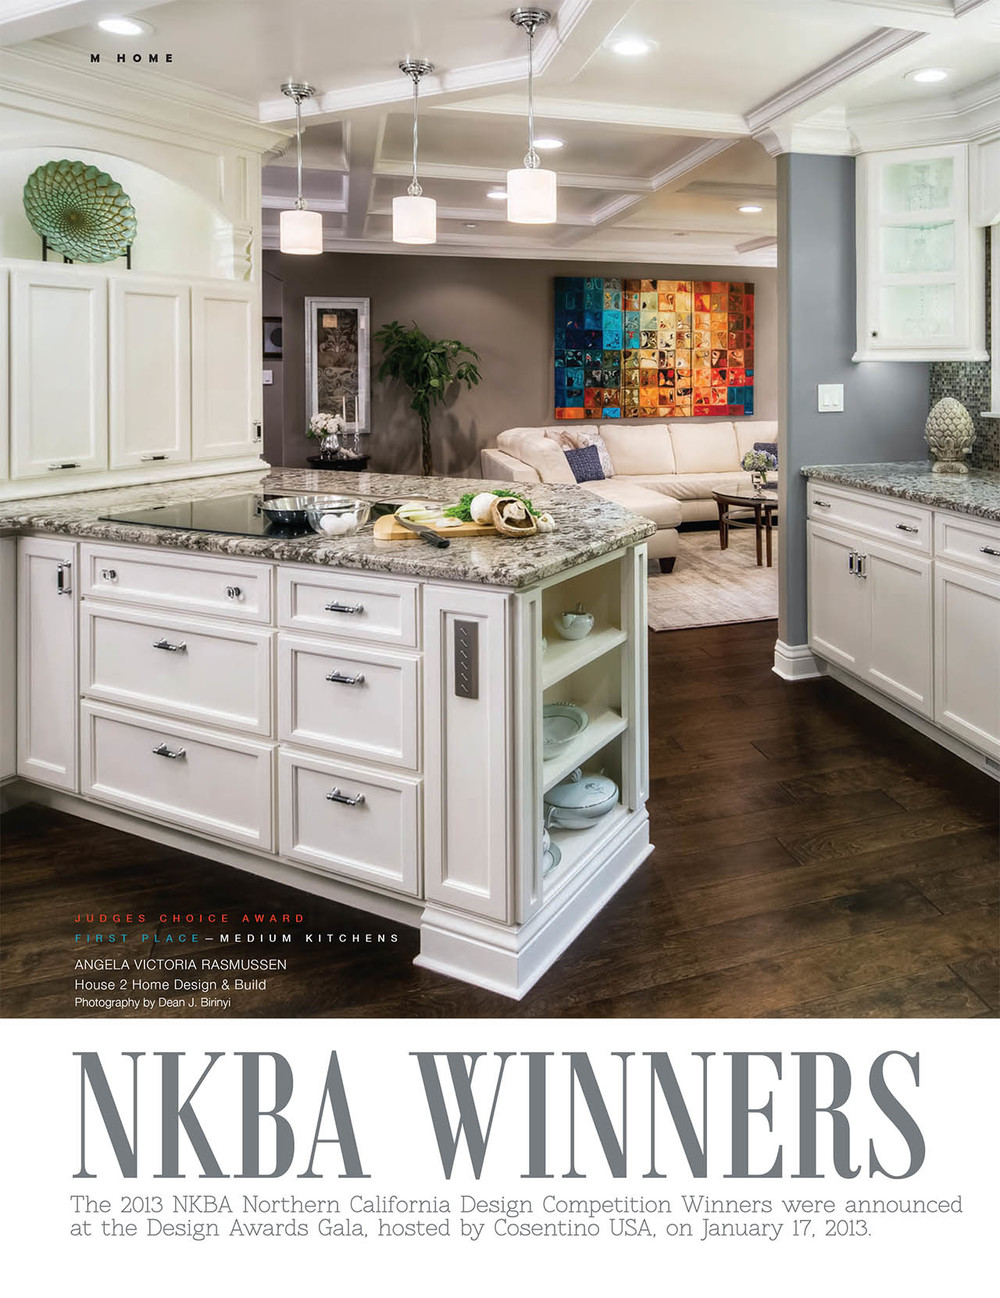 NKBA Award Winners in M Magazine North - House 2 Home Design Build